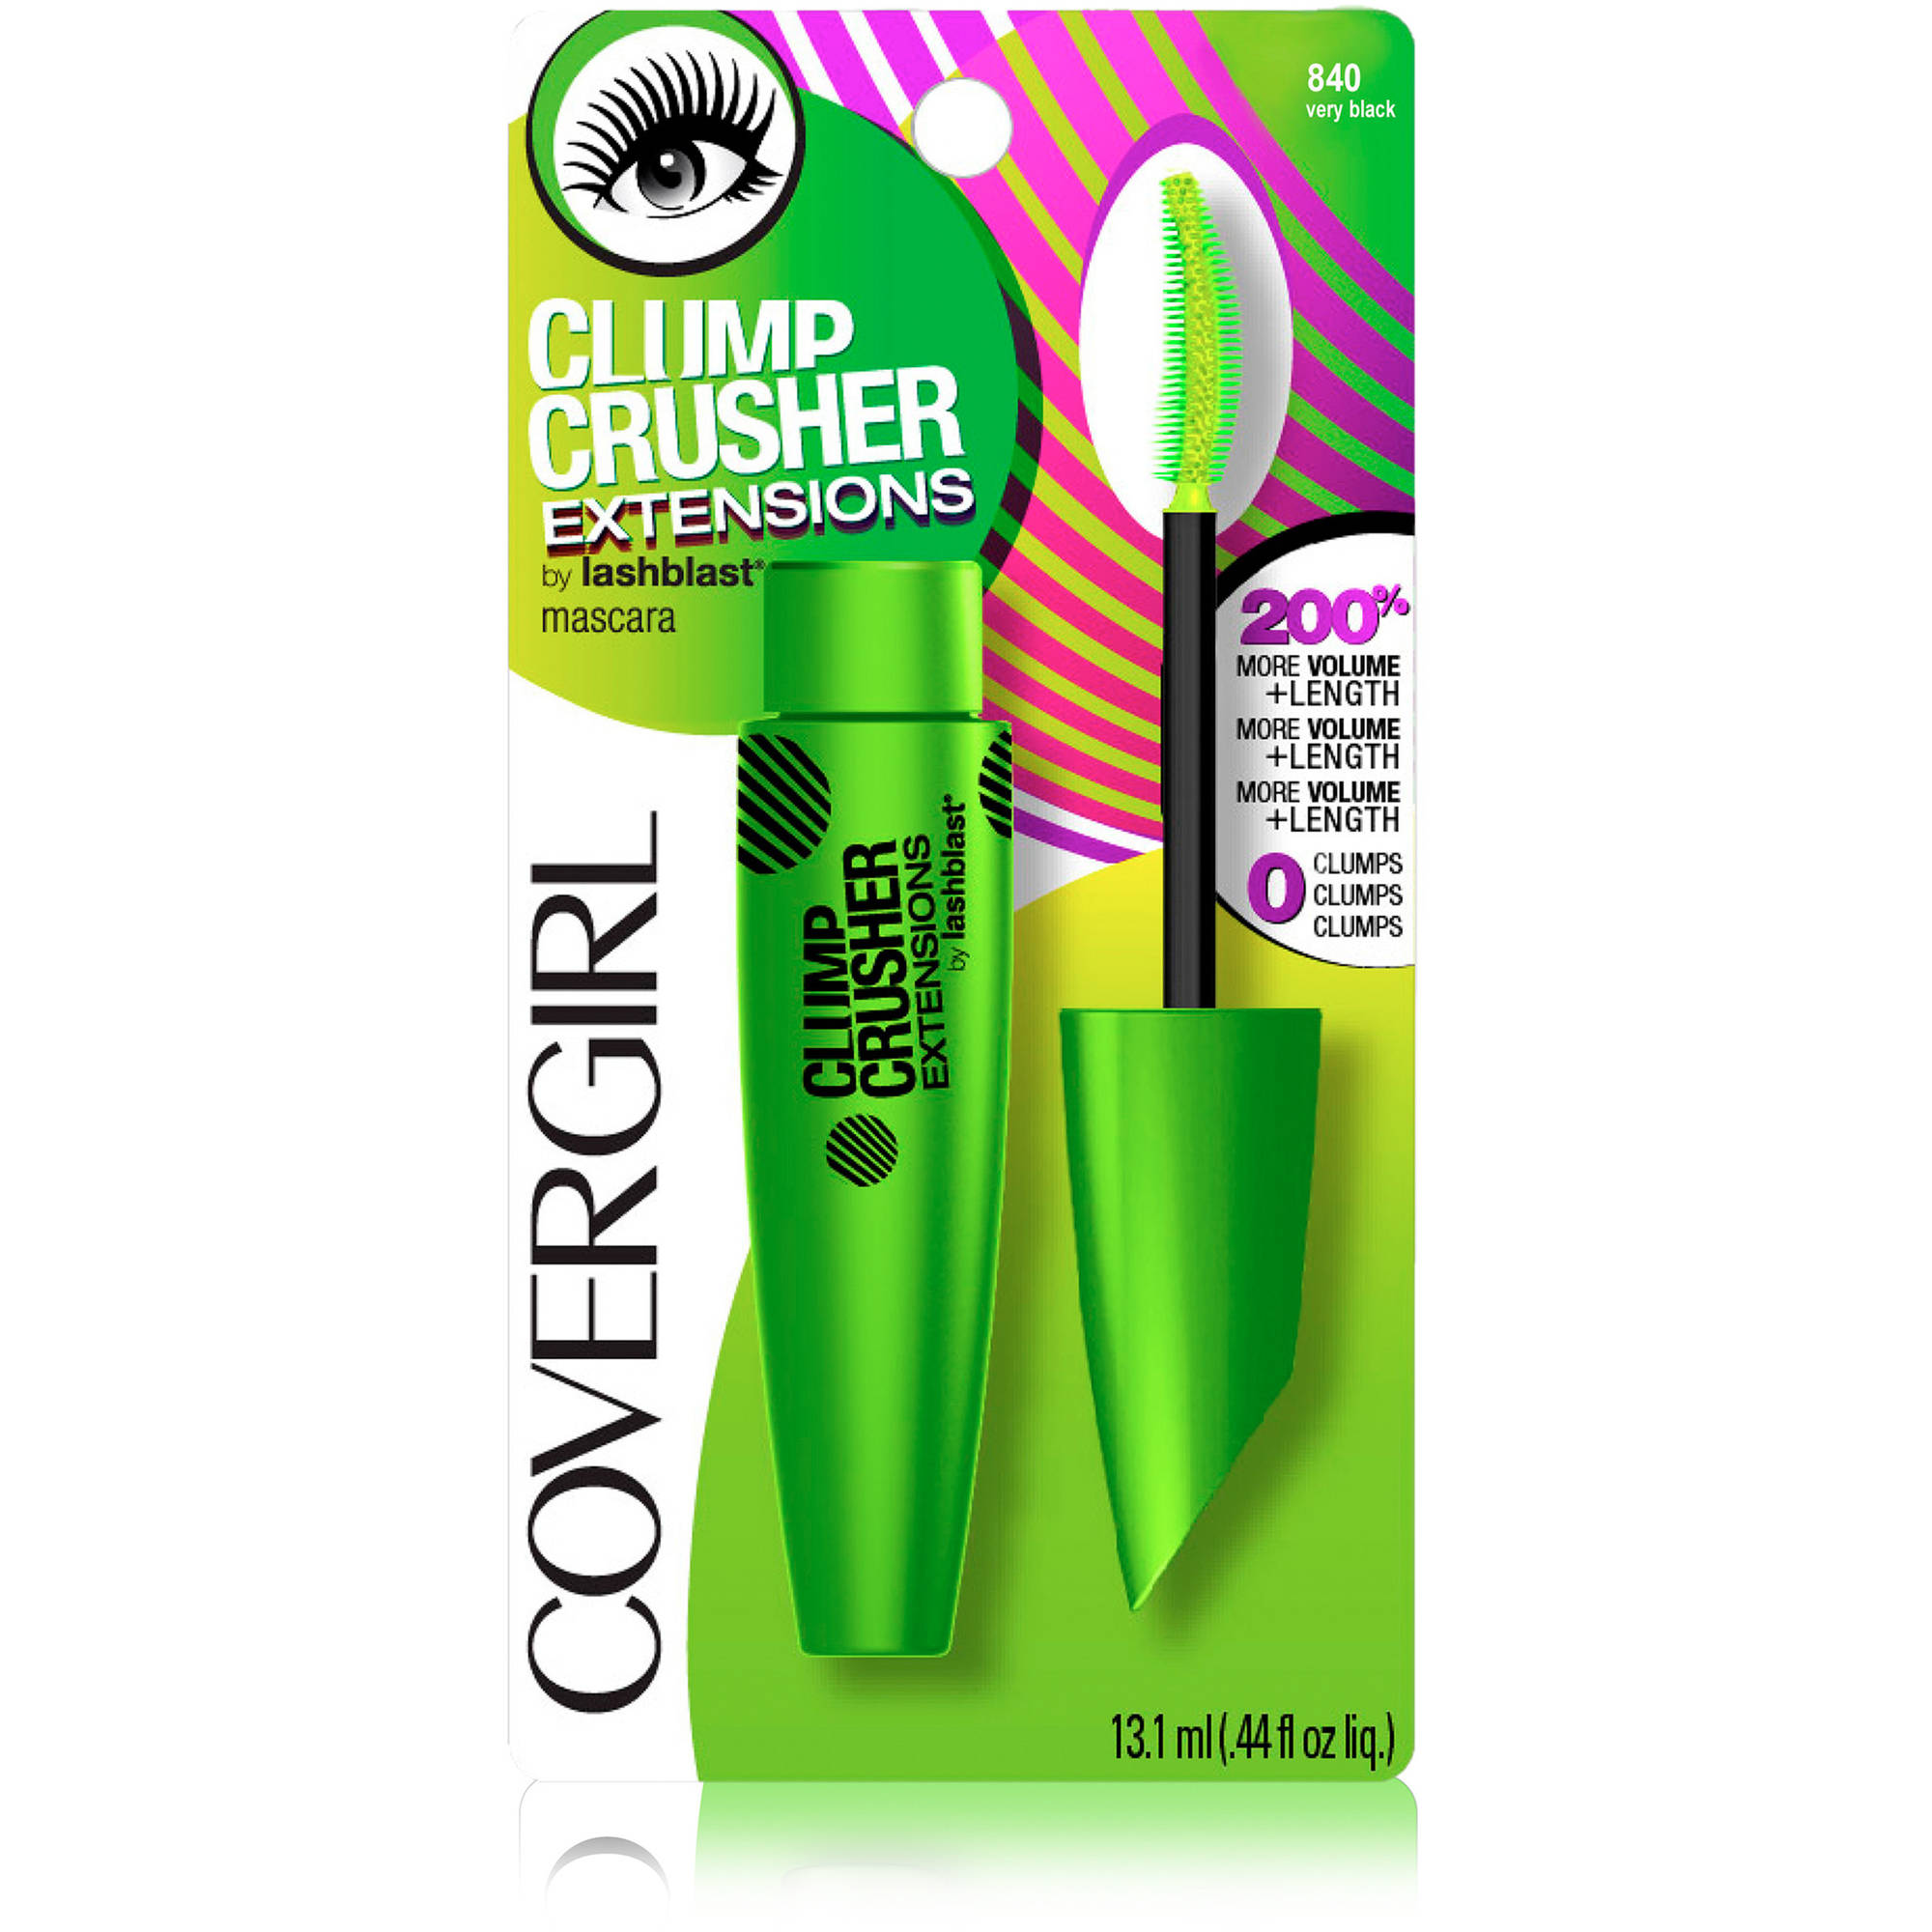 COVERGIRL Clump Crusher Extensions by LashBlast Mascara, 840 Very Black, .44 fl oz